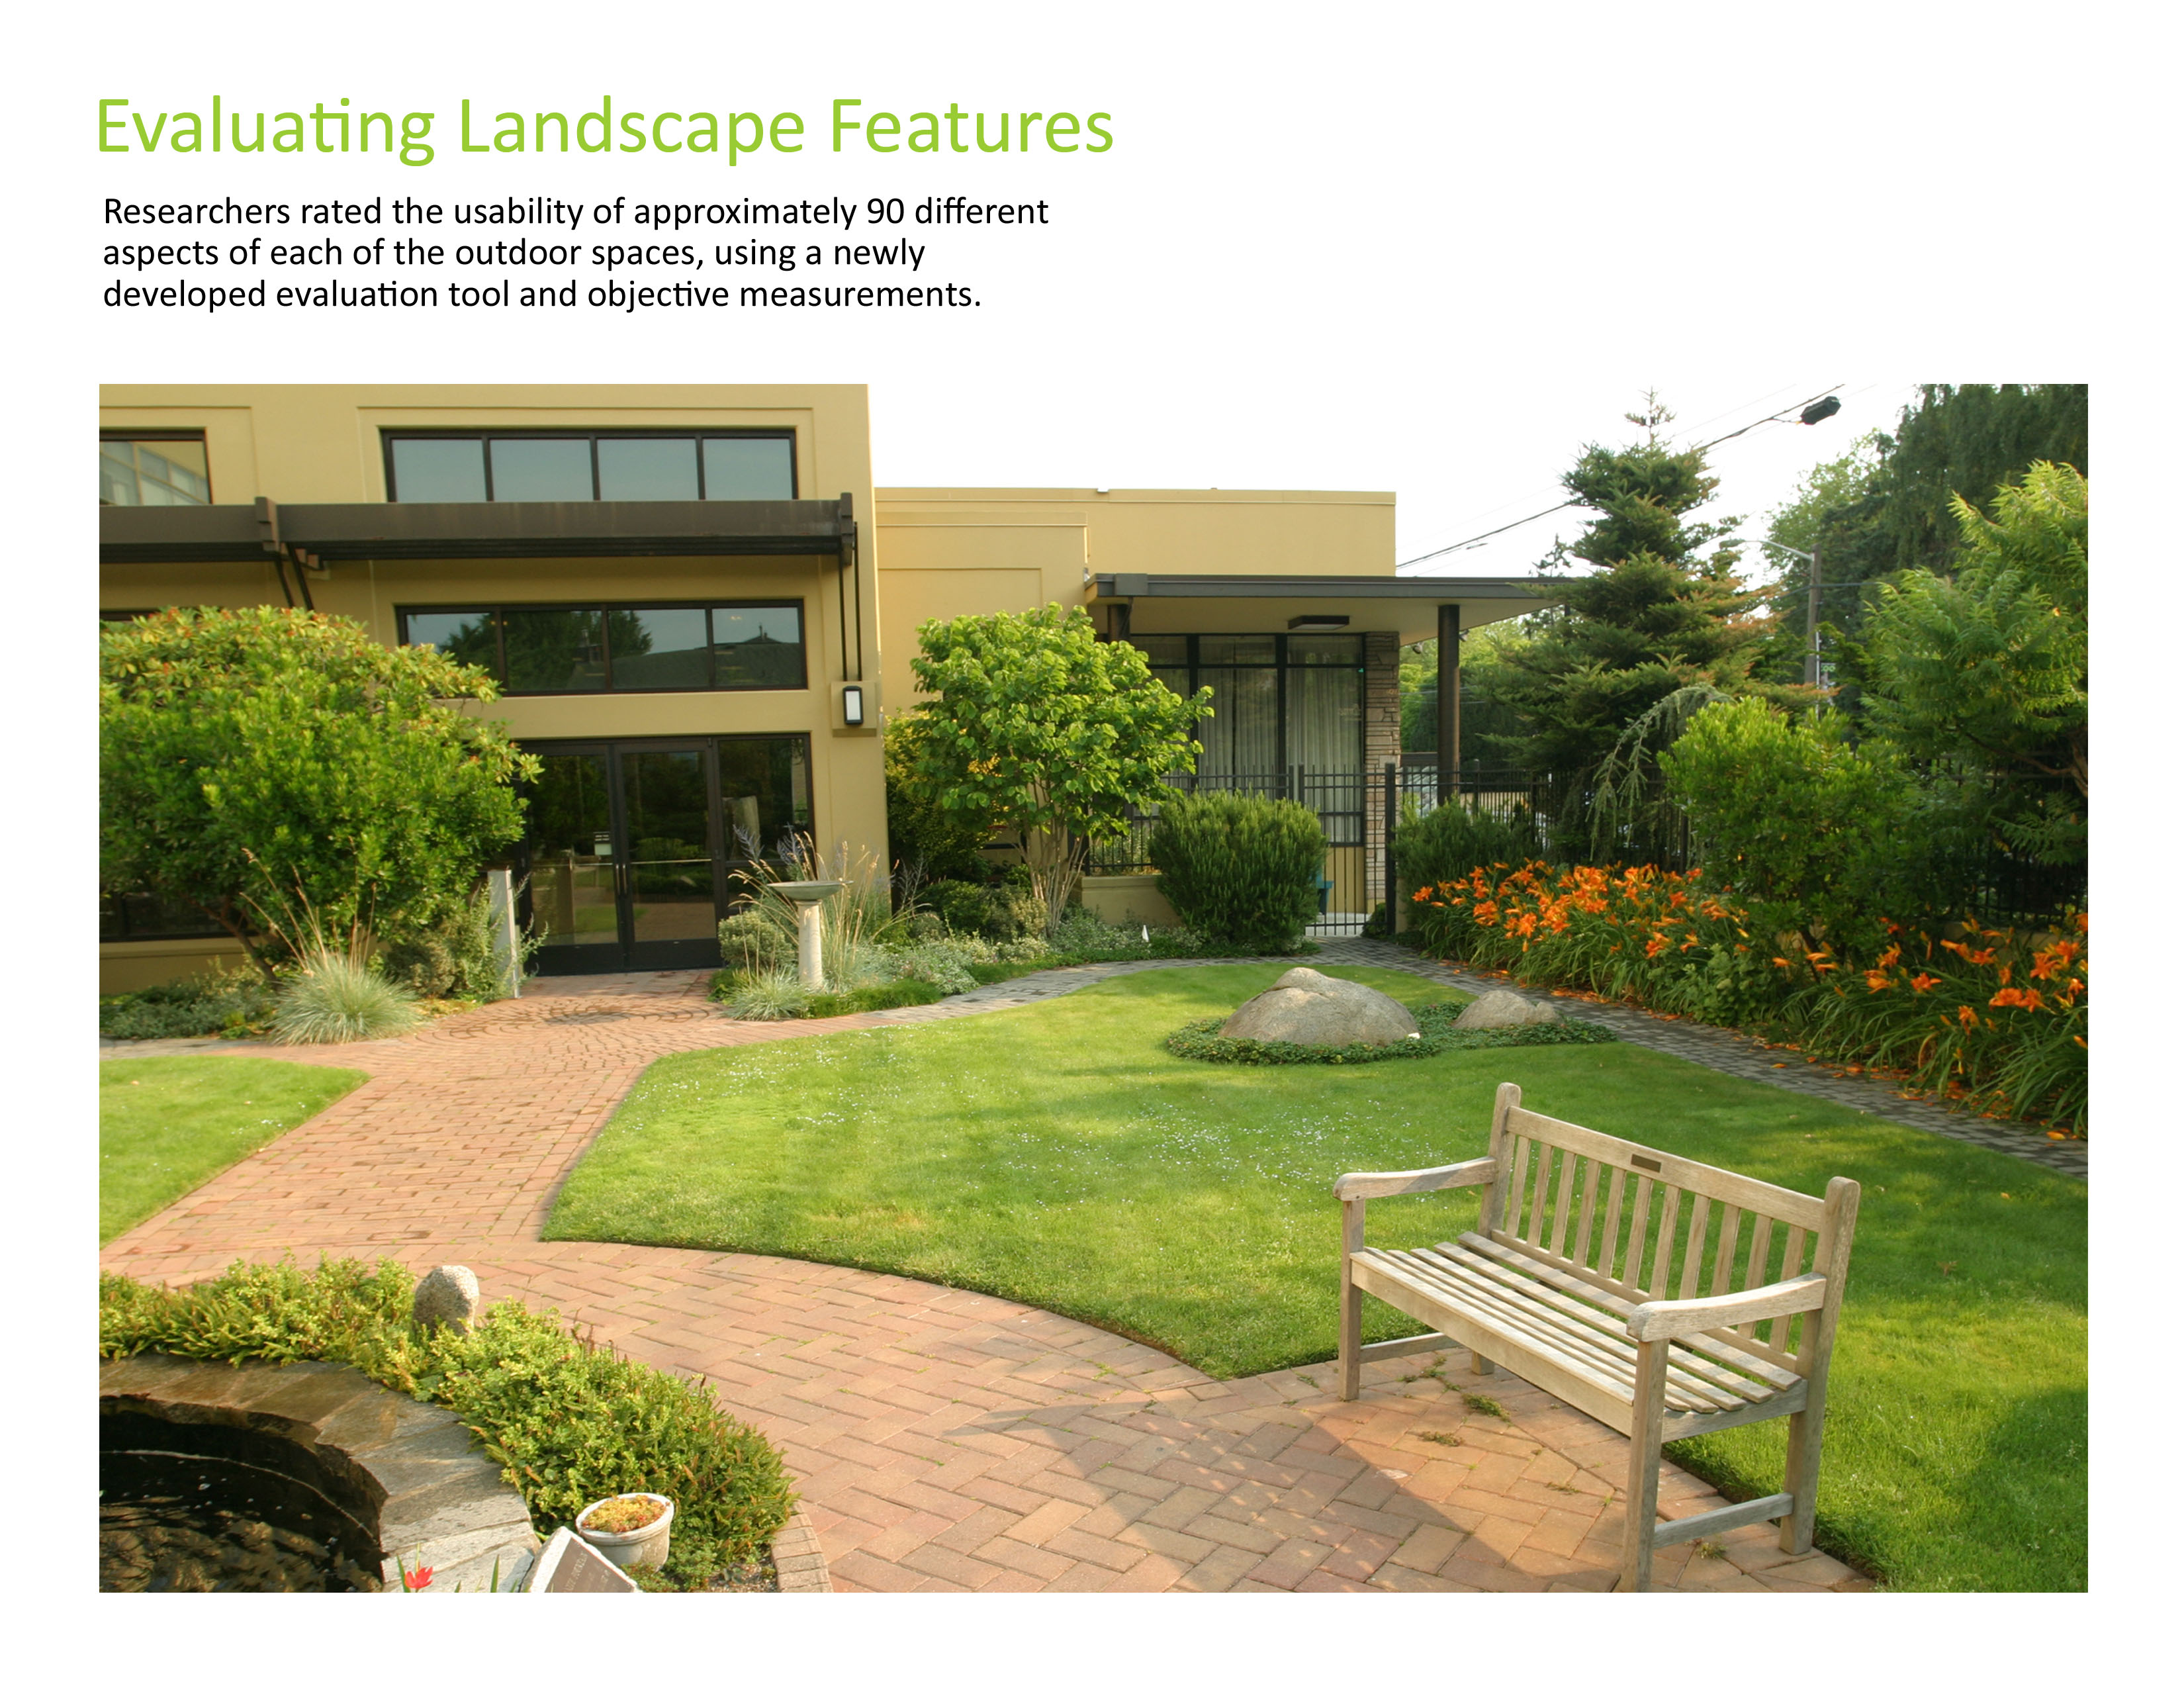 Asla 2010 professional awards access to nature for older for Outdoor spaces landscaping